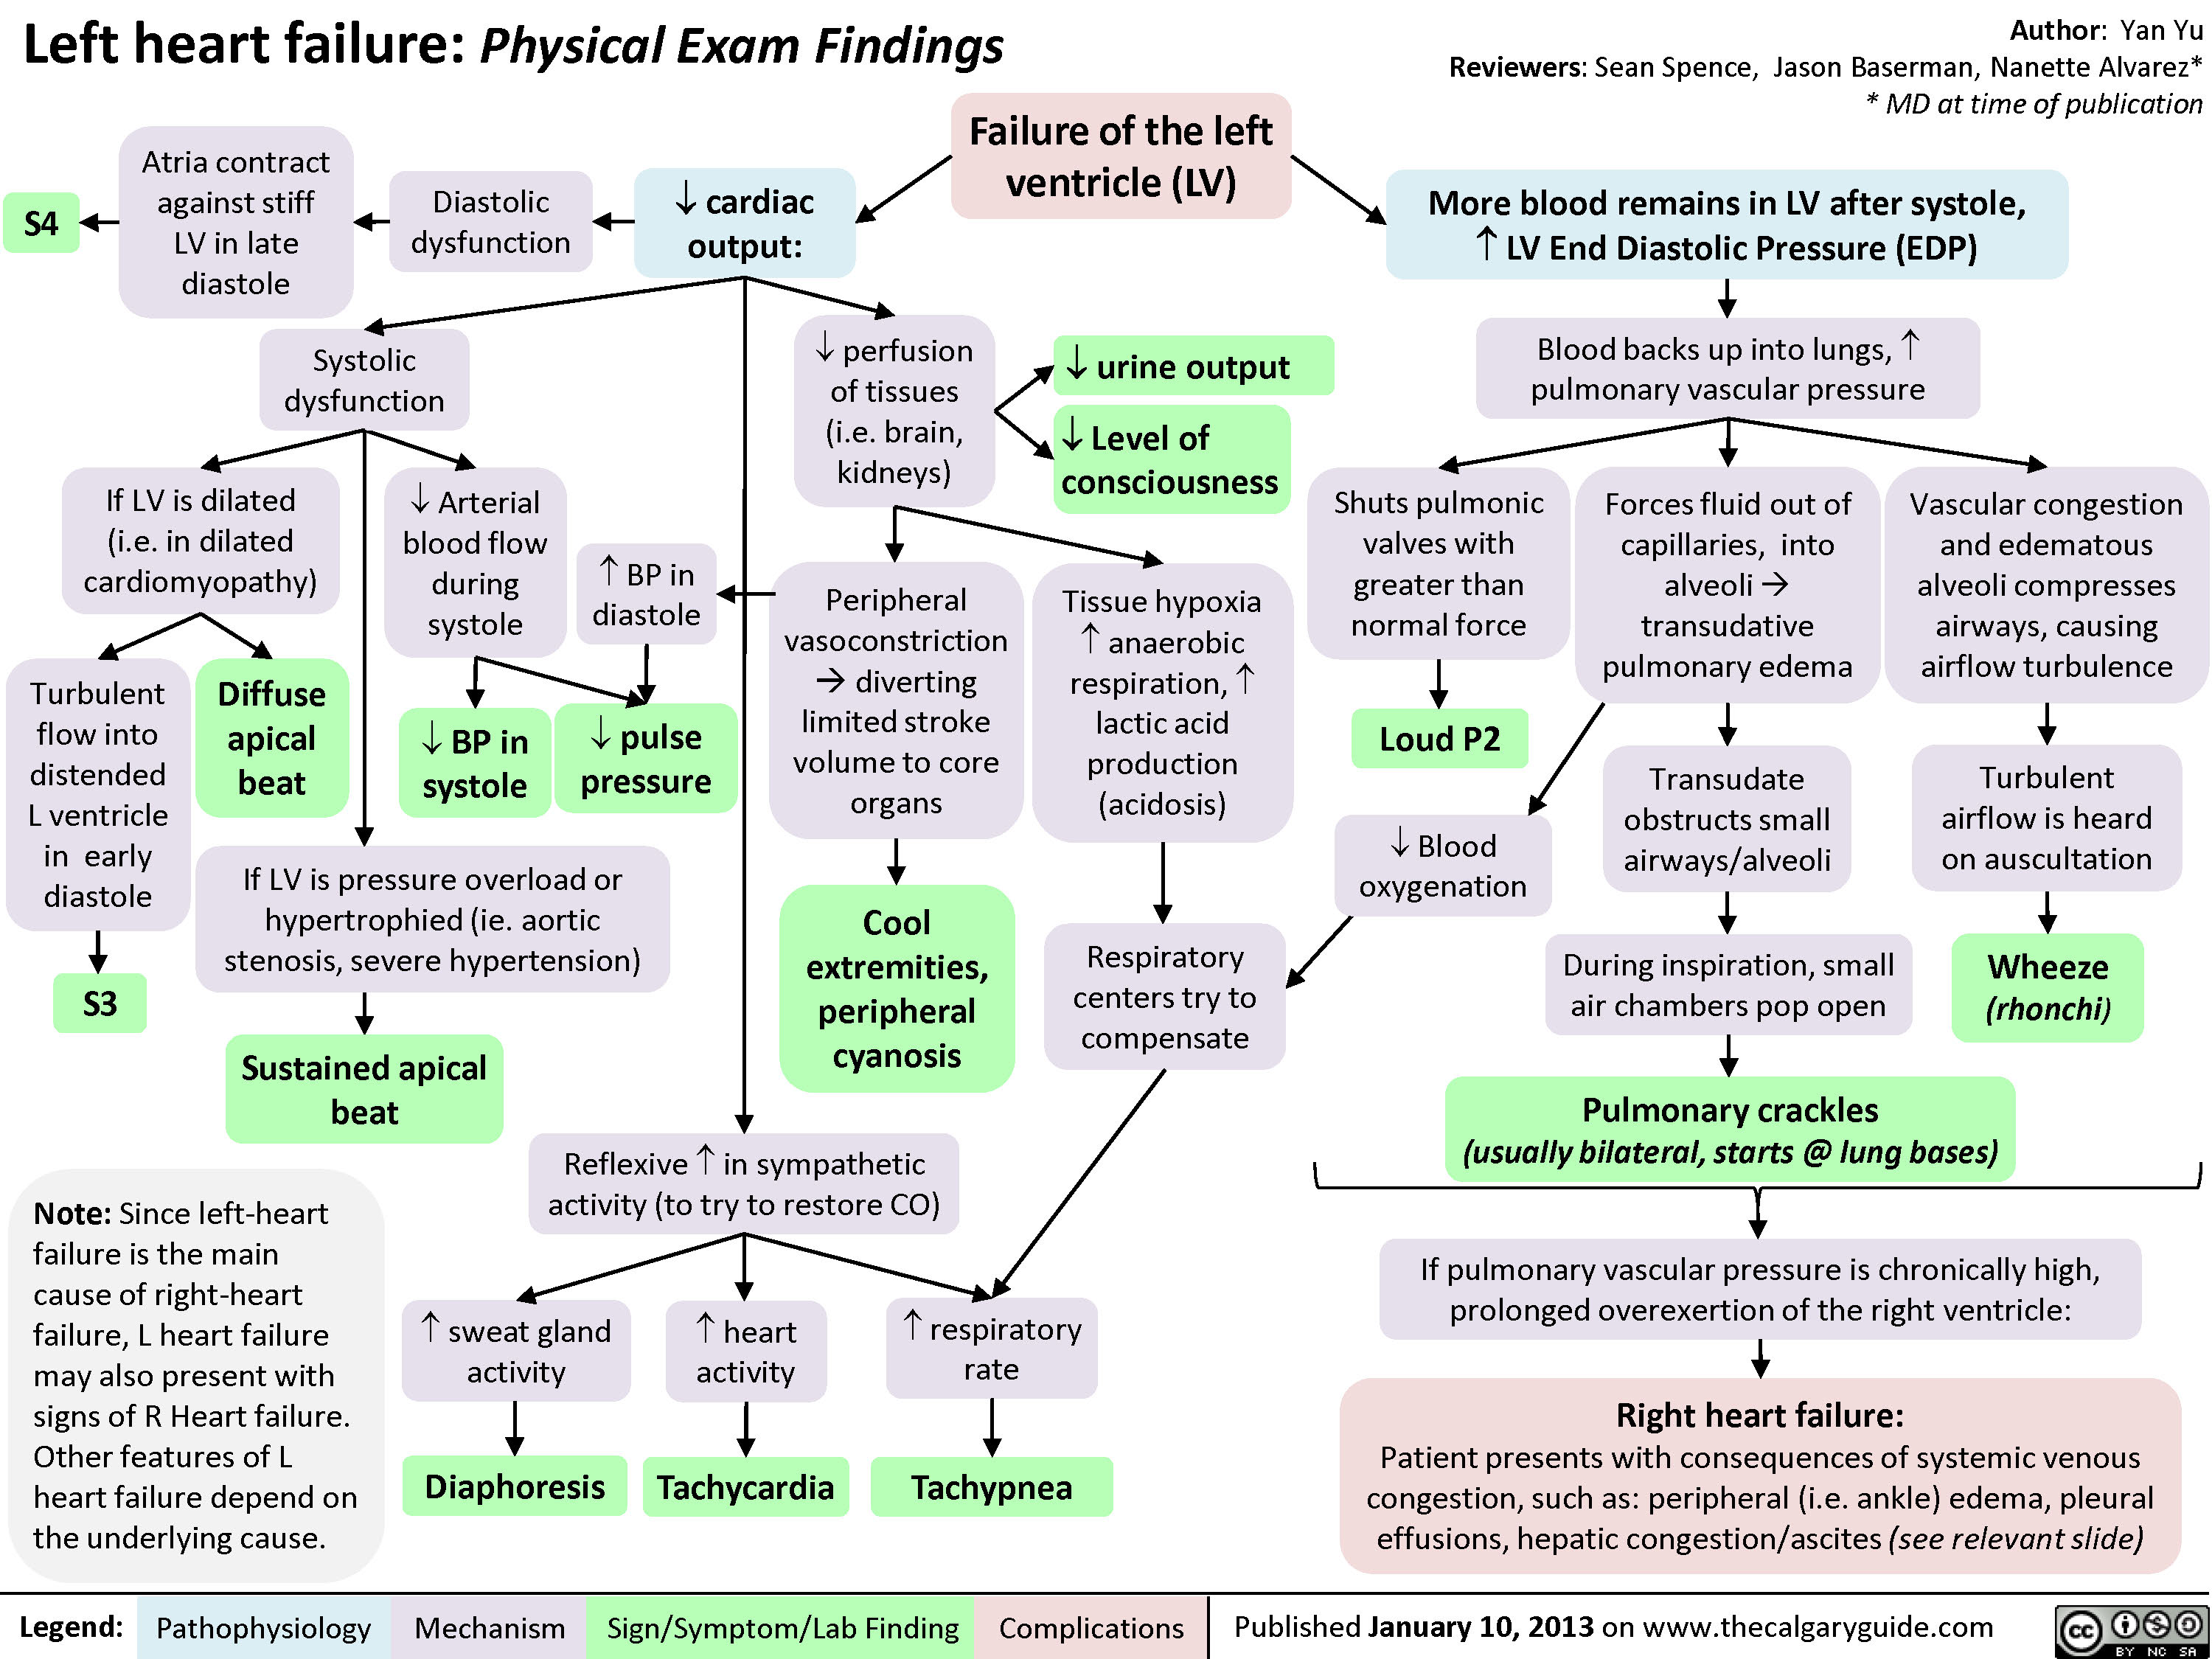 Left Heart Failure - Physical Exam Findings